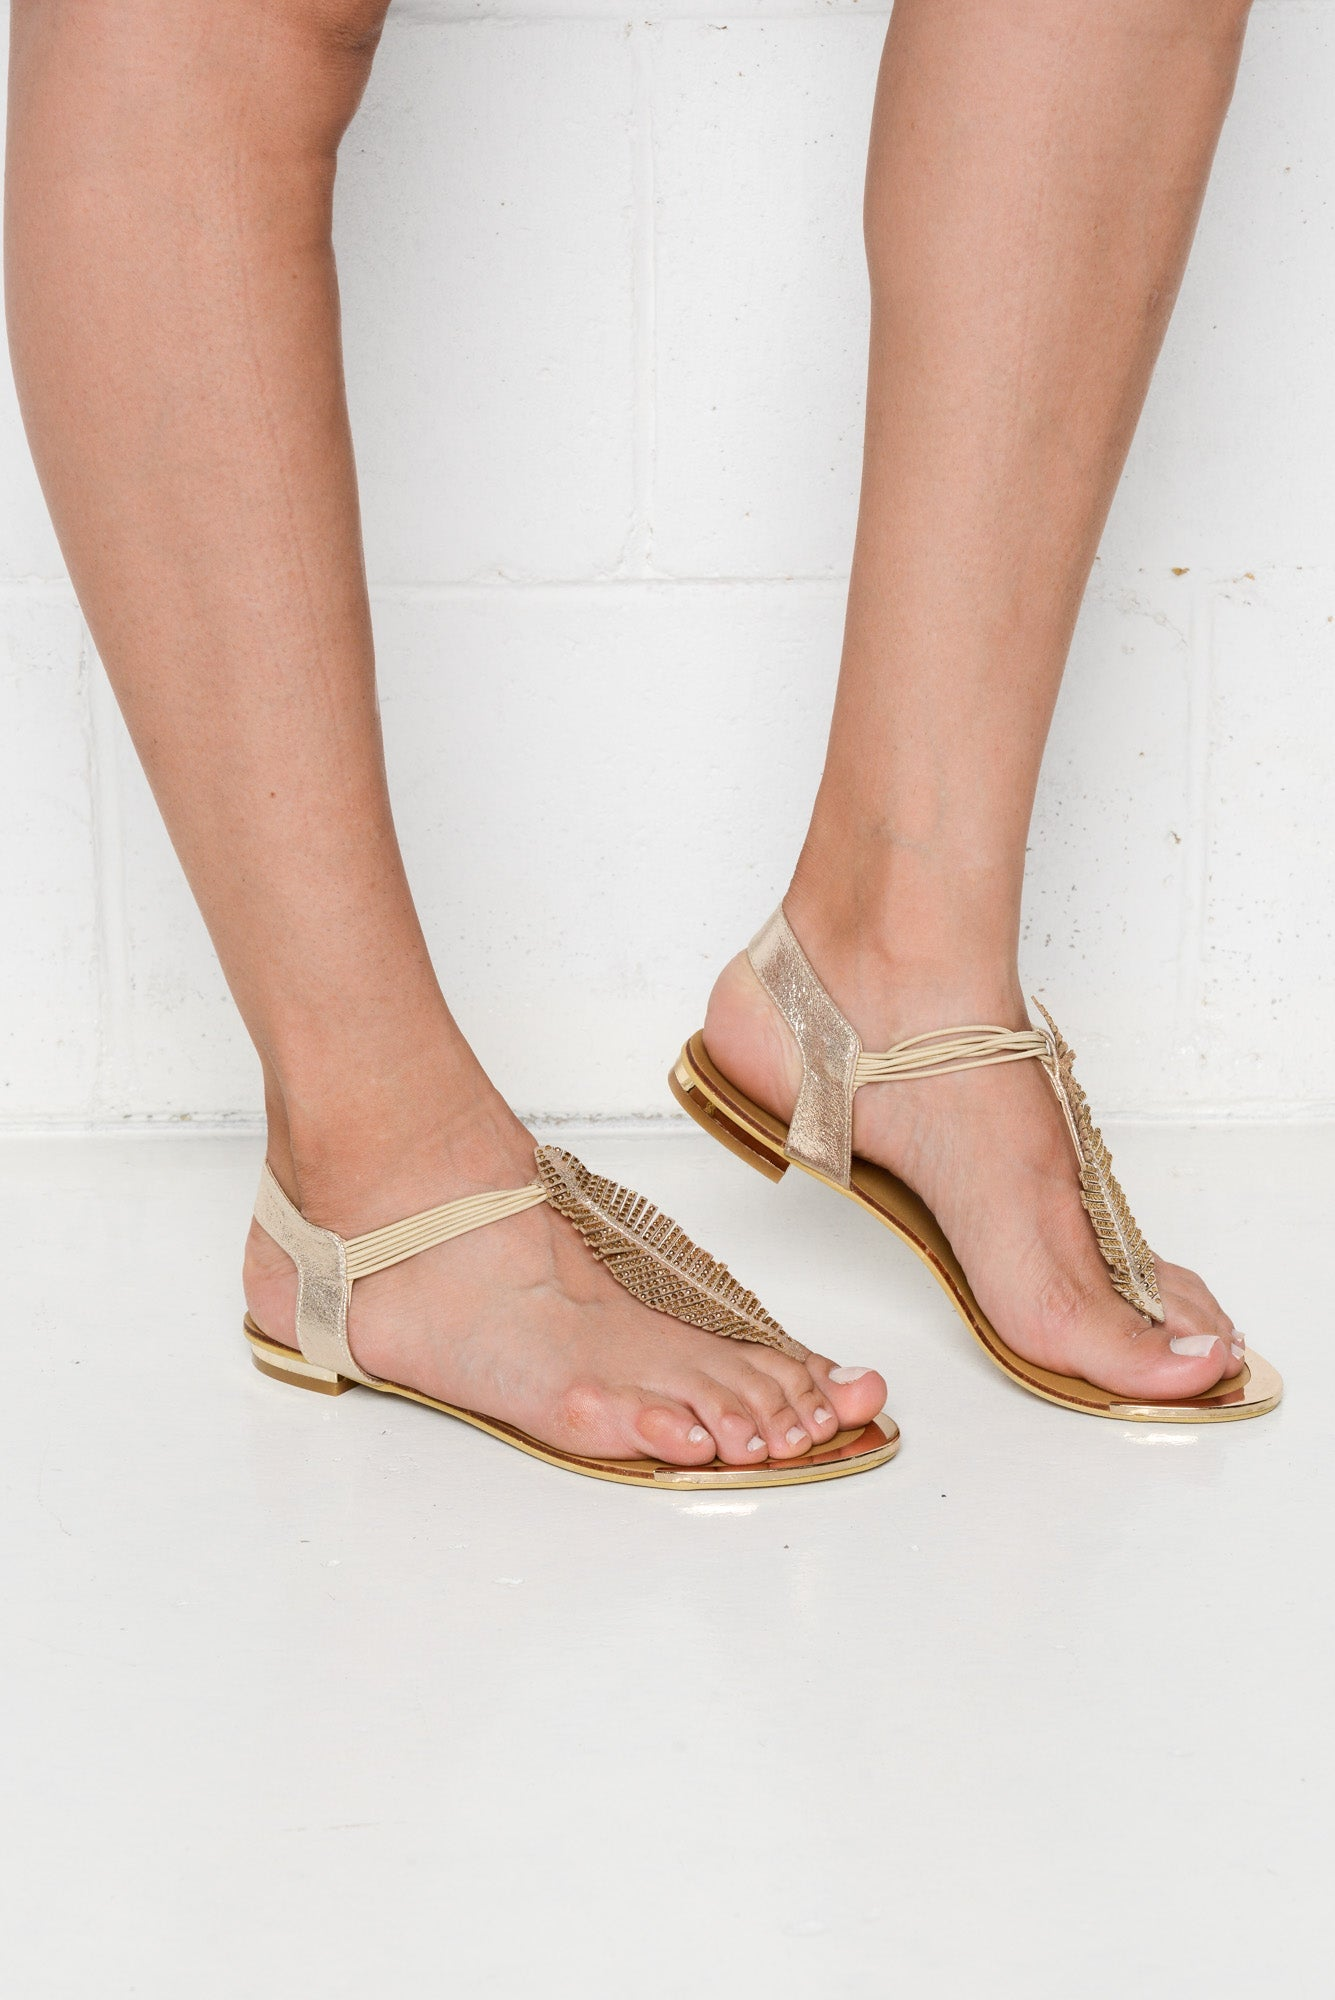 Gold Autumn Leaf Sandal - Laguna Quays - Blue Bungalow Online